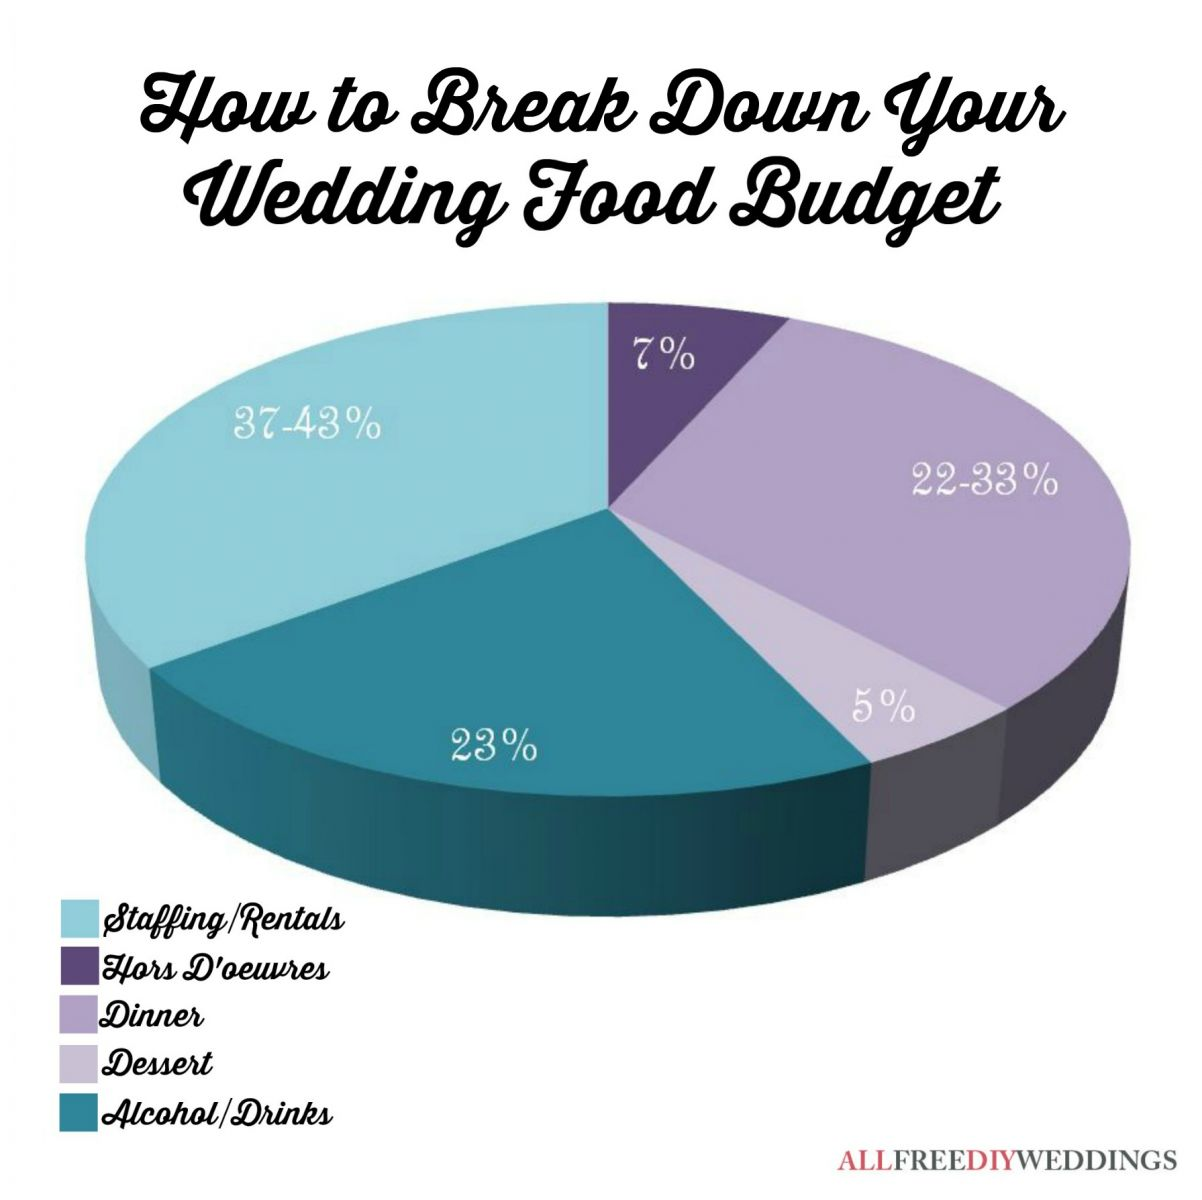 Wedding Budget Breakdown: Food